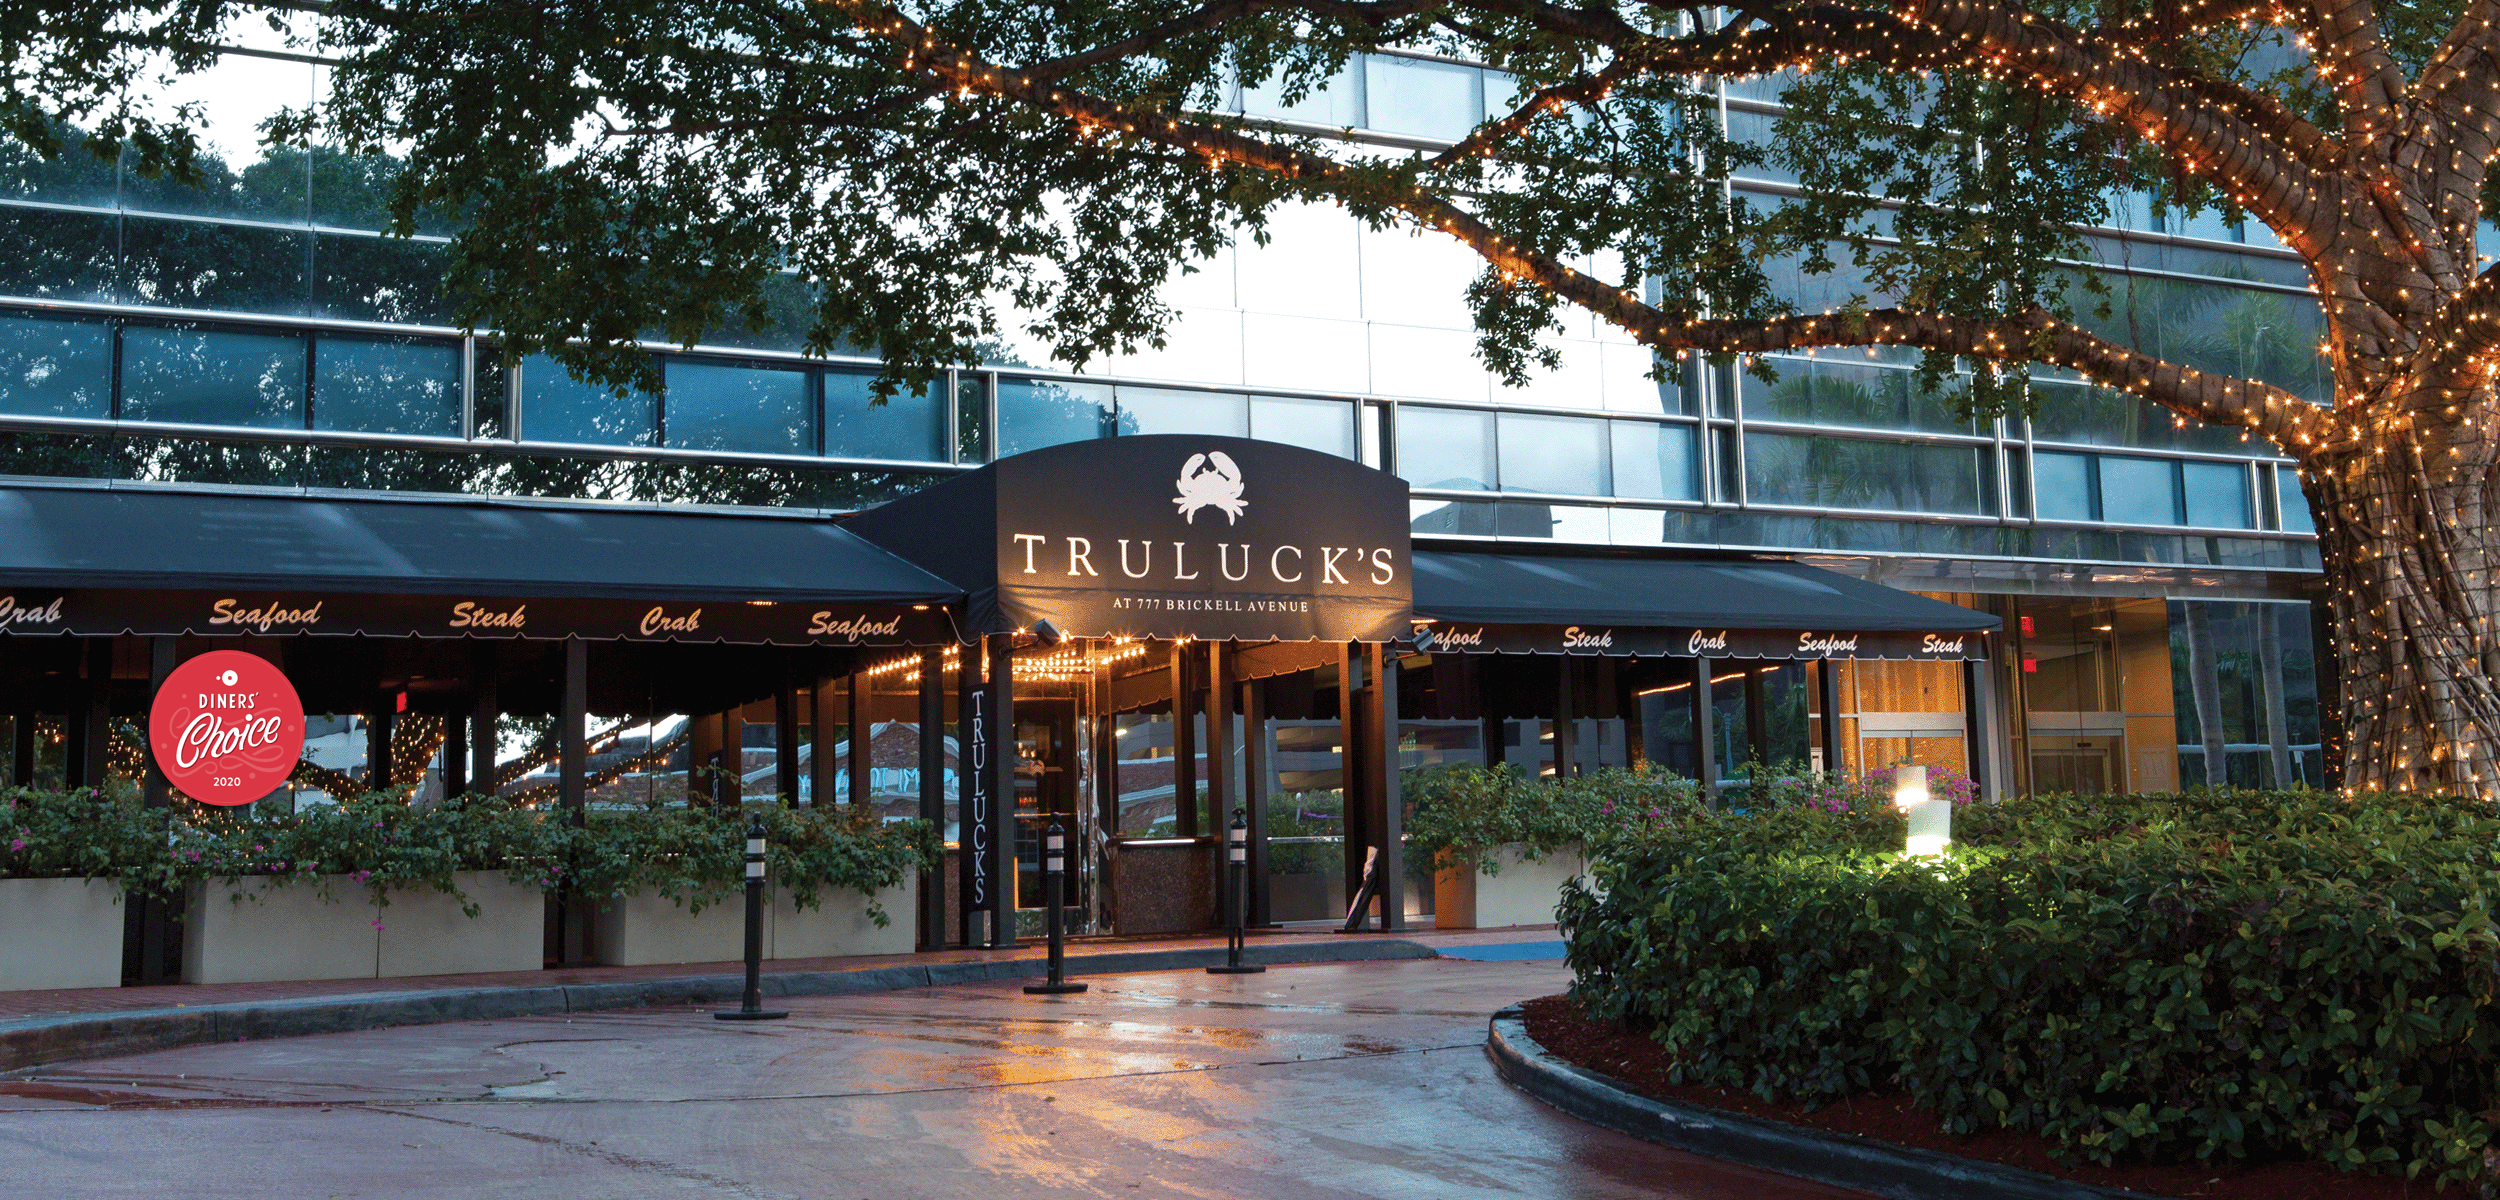 picture of Truluck's Miami exterior entrance